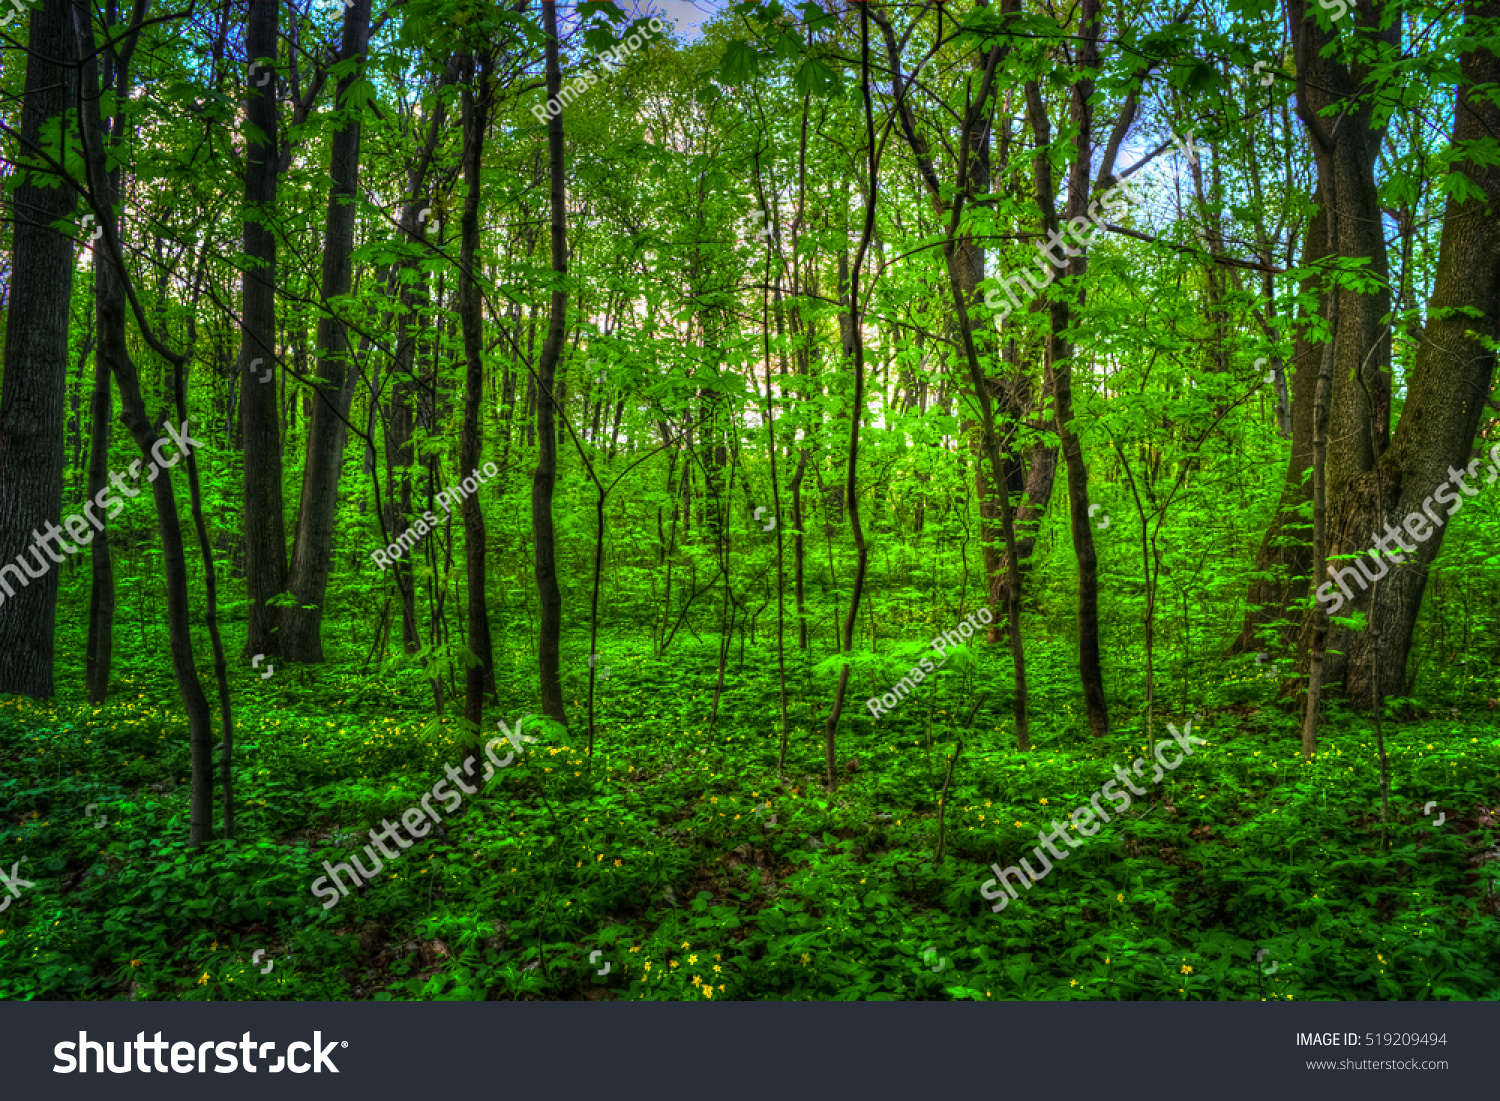 Colorful Summer Landscape Pathway Woods Green Stock Photo 519209494 ...